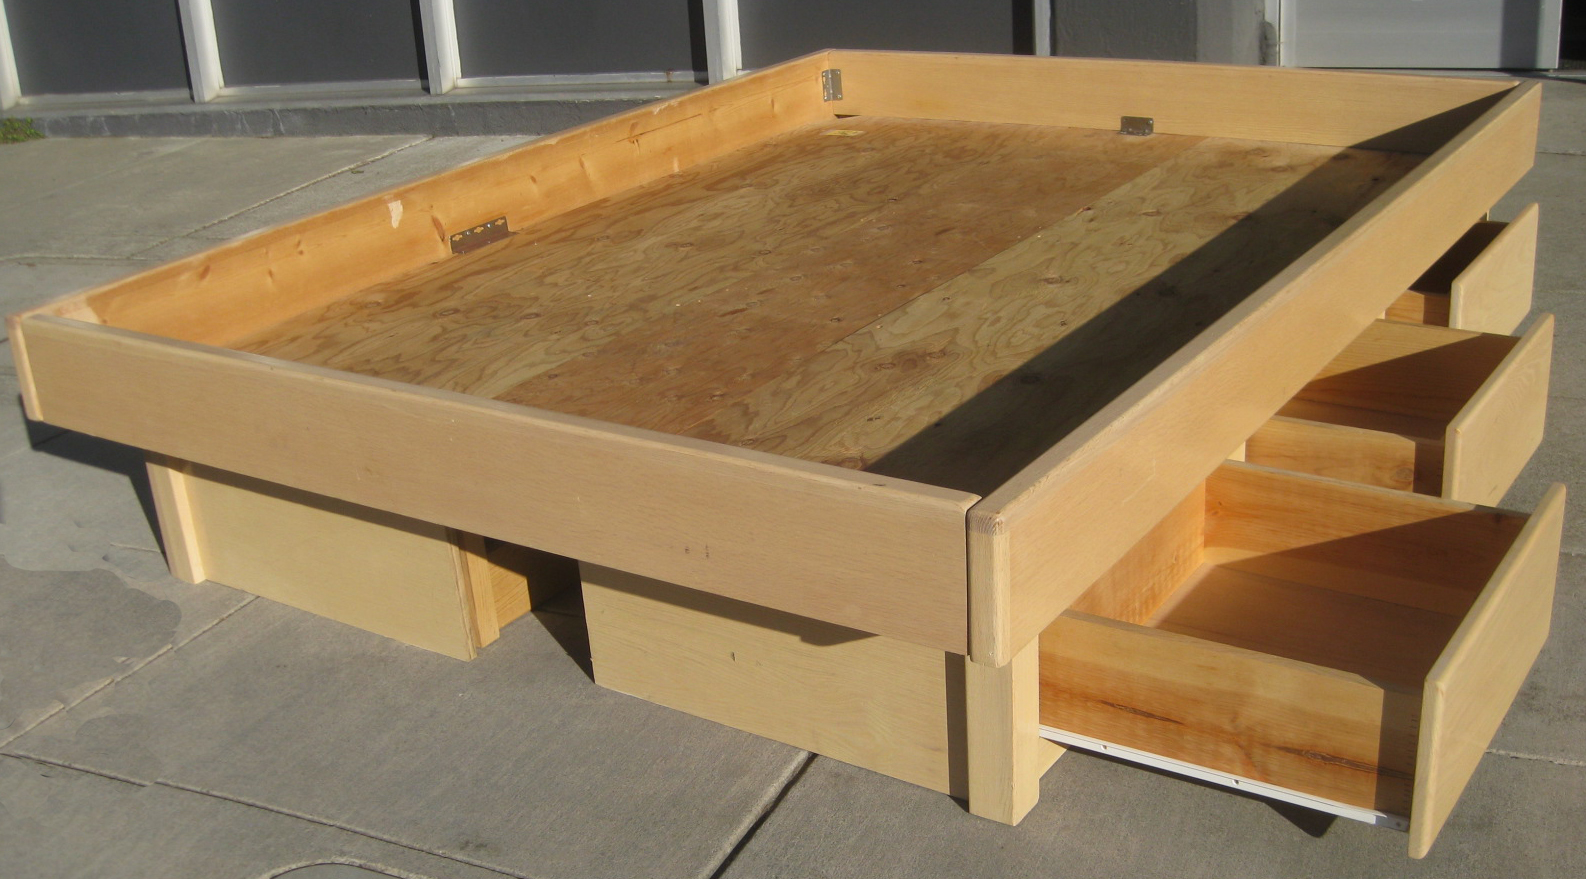 Home » How To Make A Queen Size Platform Bed With Drawers